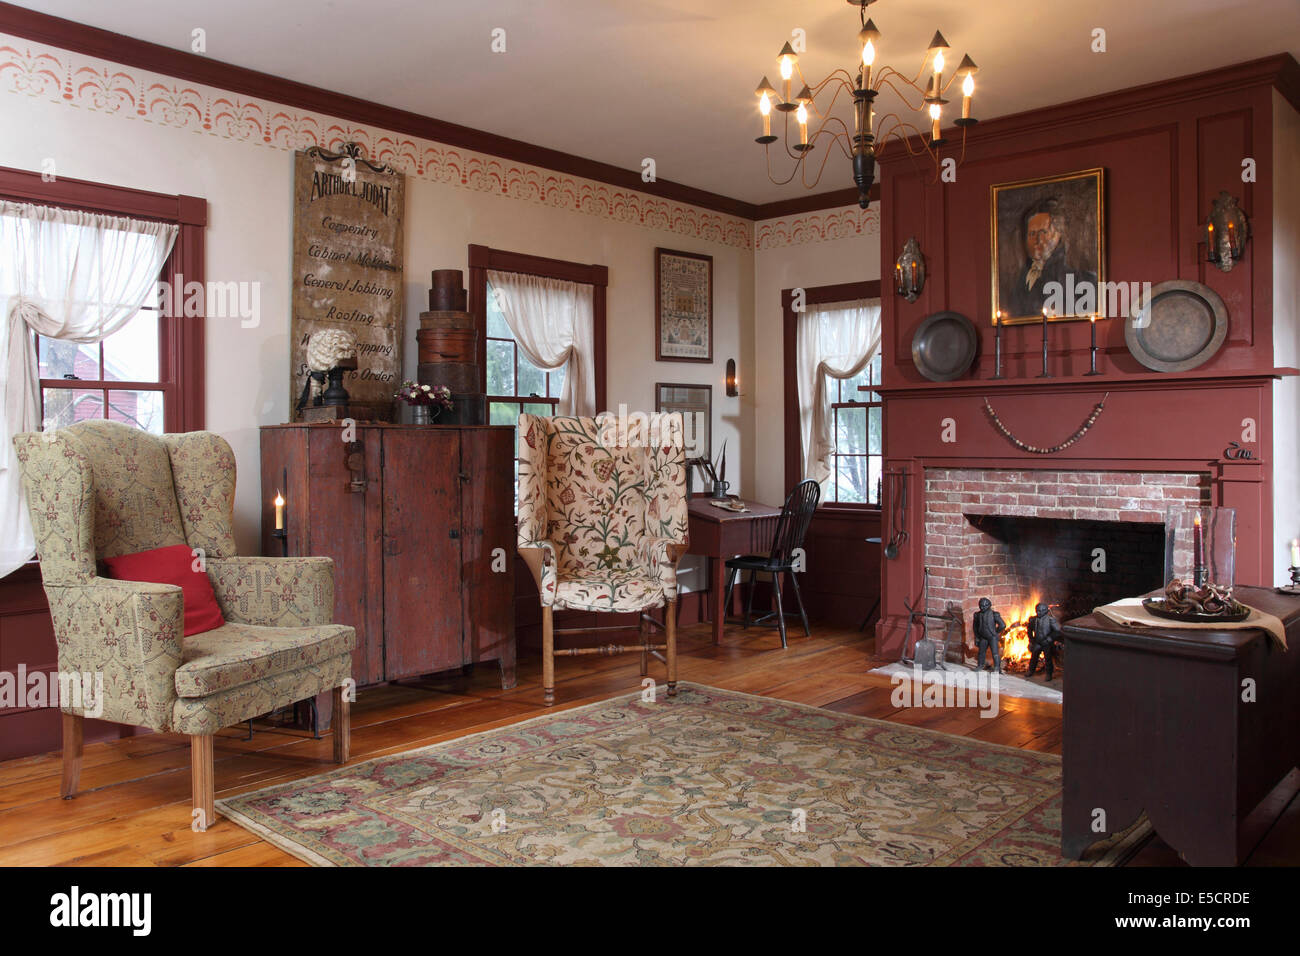 A Formal Living Room With Fireplace And Two Wing Chairs White Walls Stencil Pattern Rustic Cabinet USA